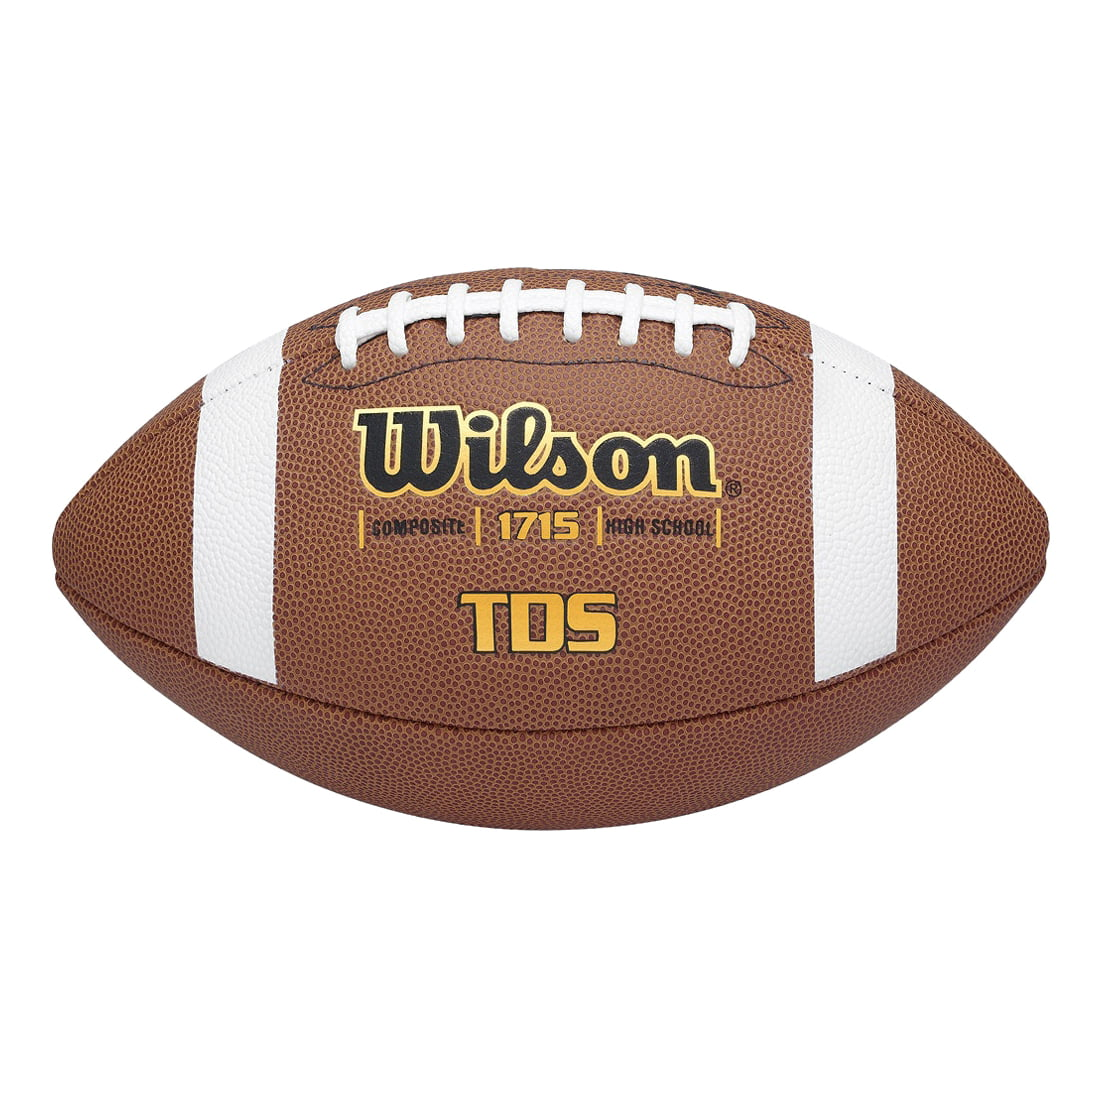 Wilson American Football, TDS Official Size Football by Wilson Sporting Goods Co.